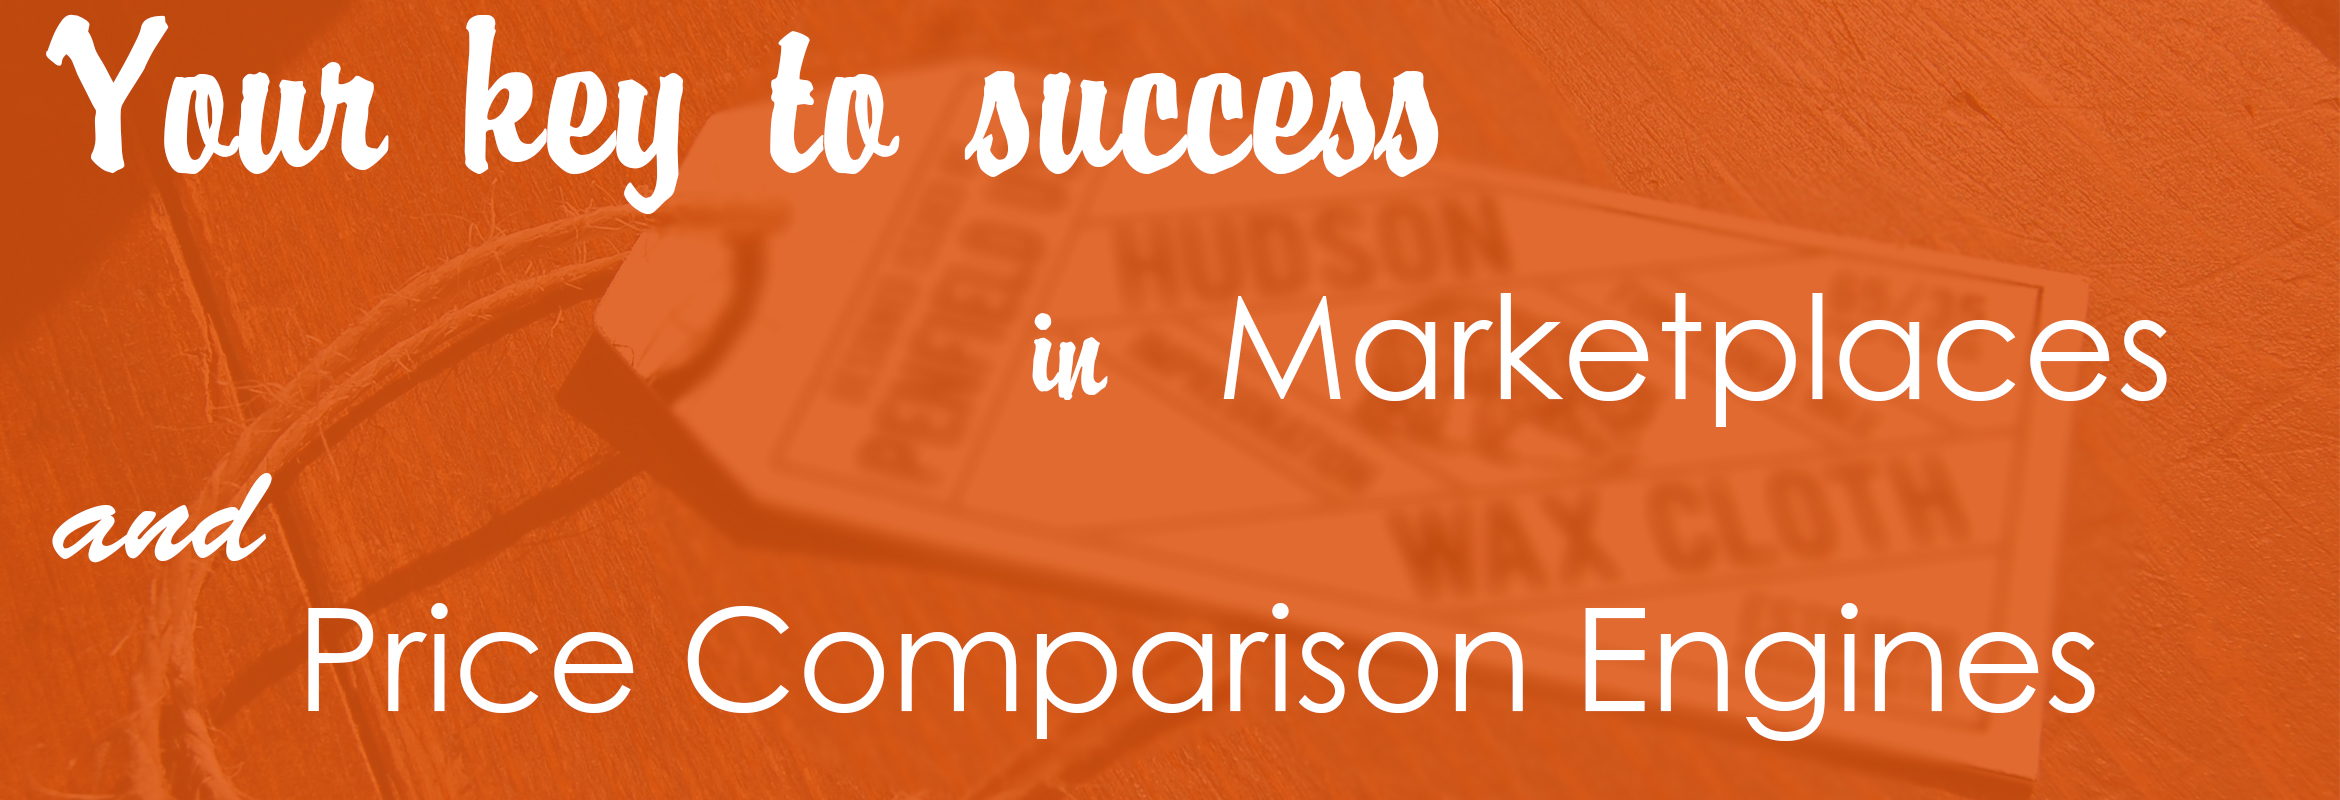 Advanced Product Feeds: Your Key To Success In Marketplaces And Price Comparison Engines